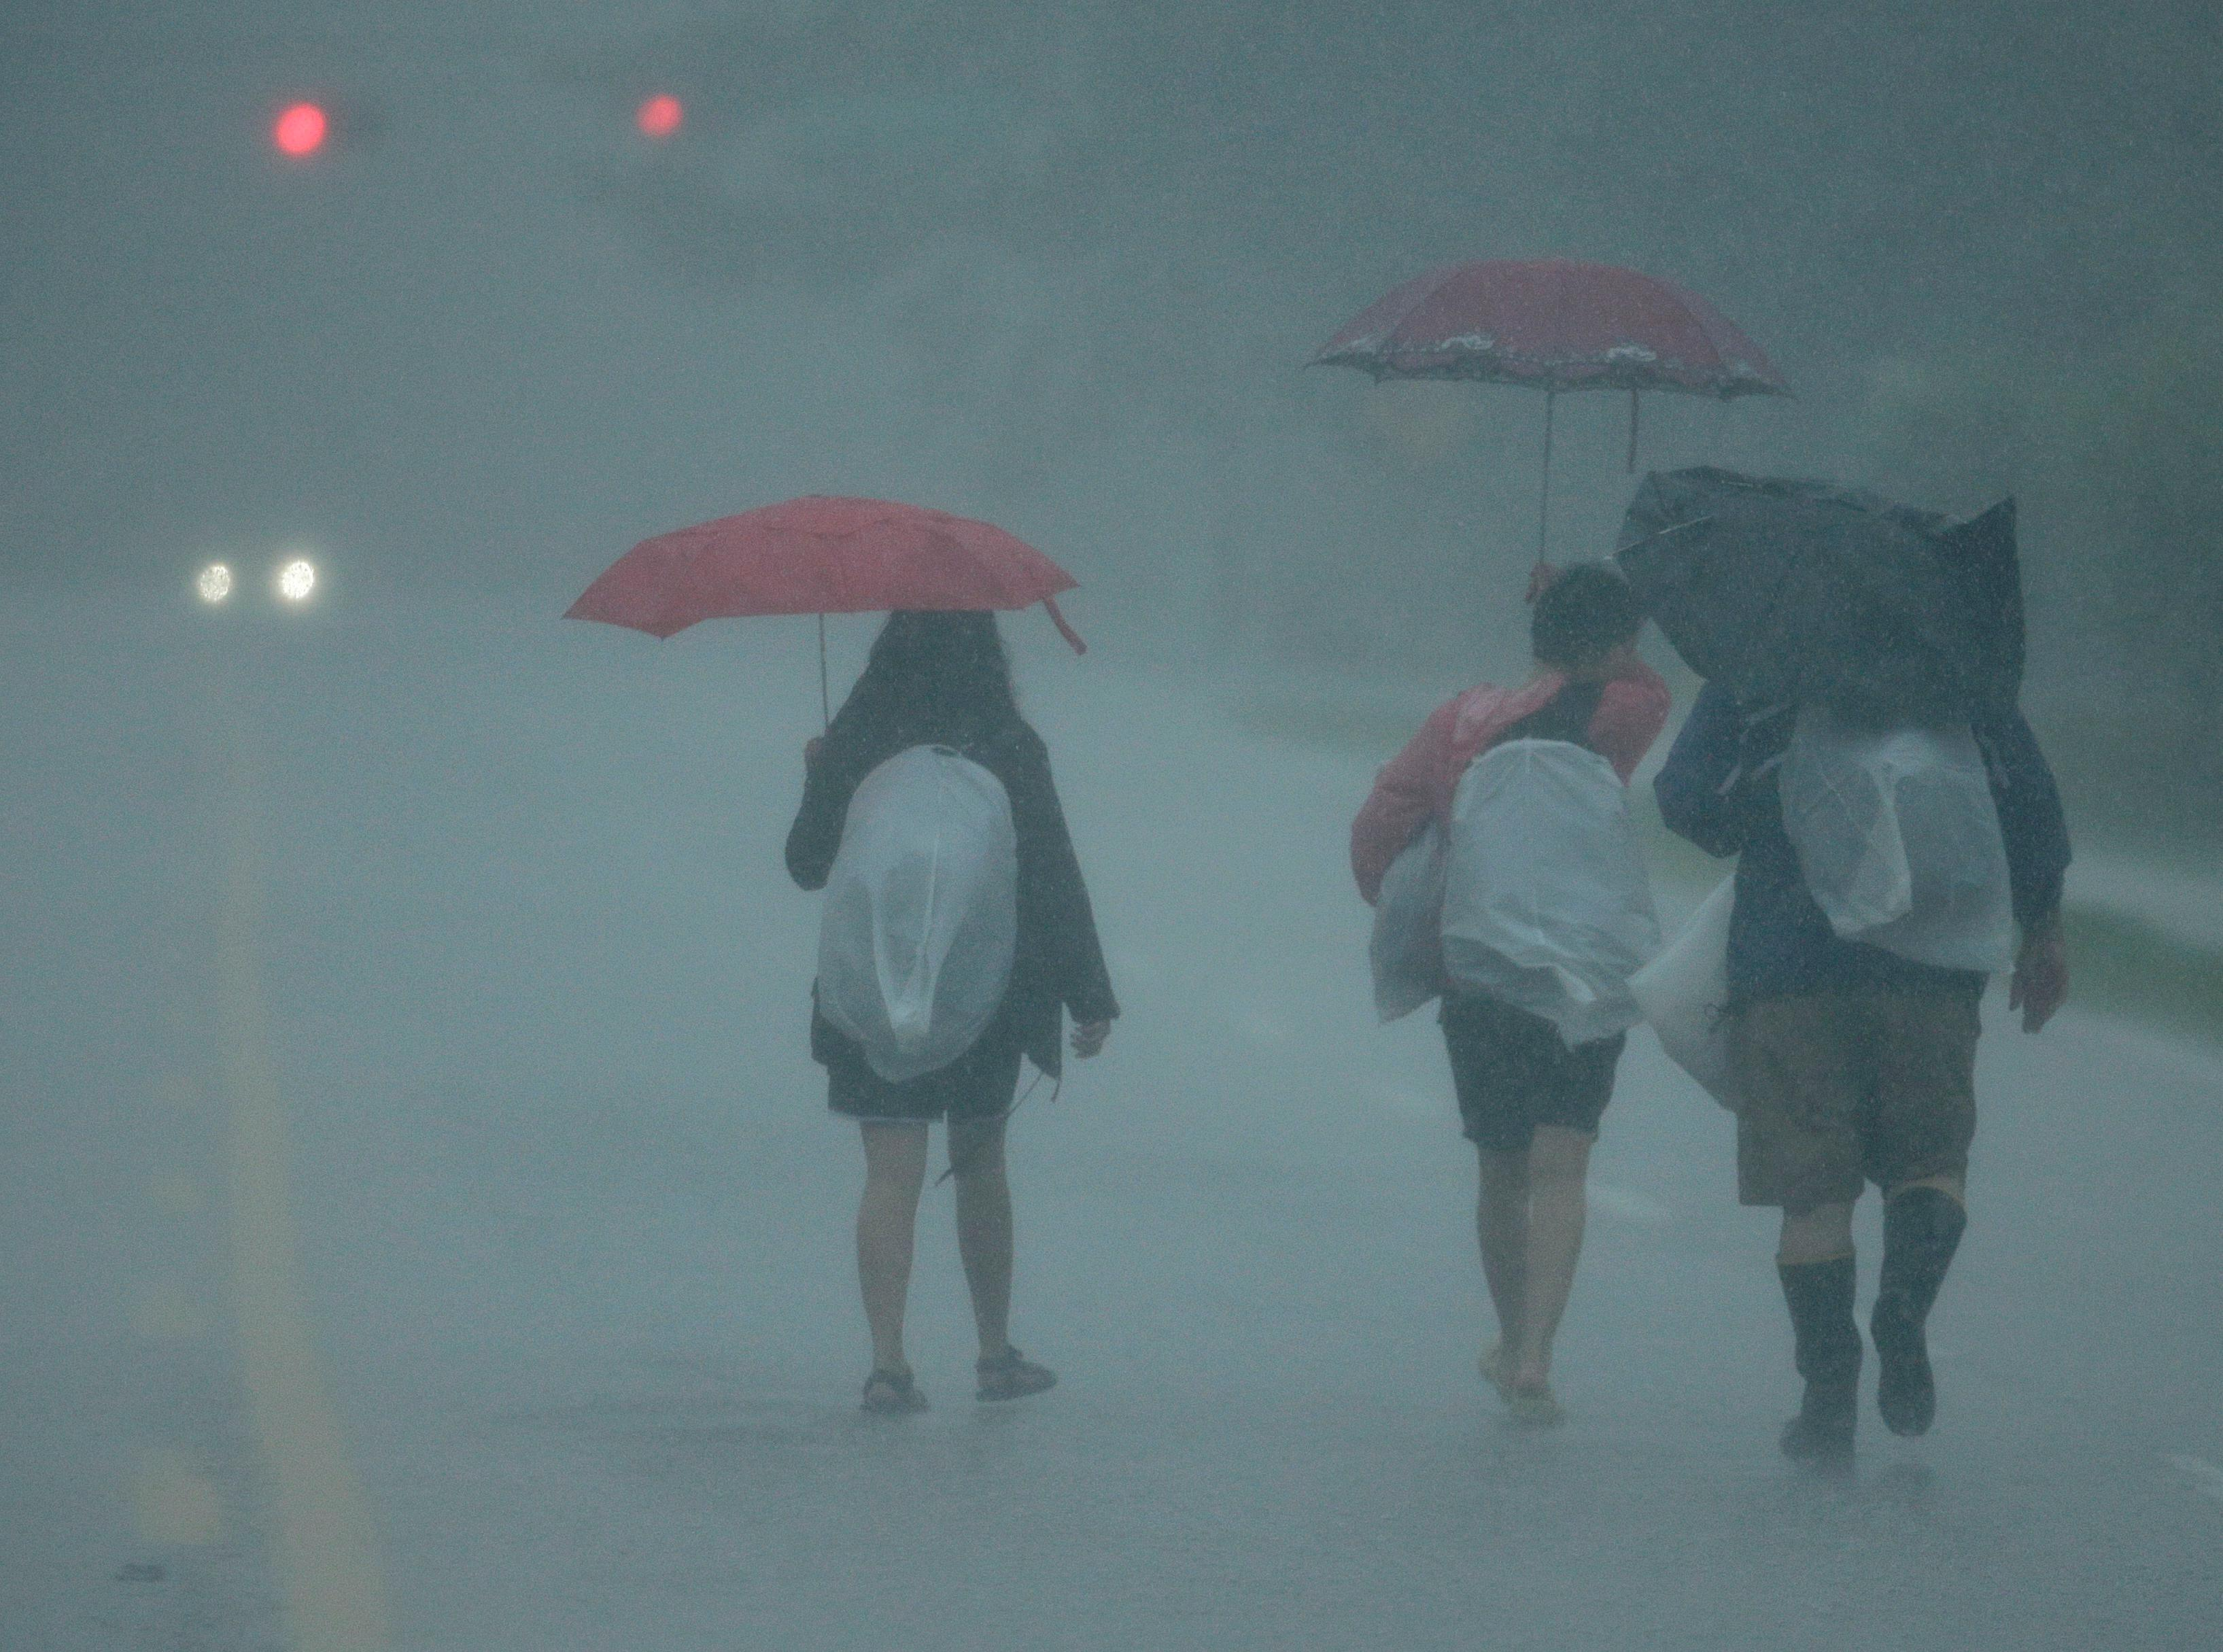 People walk in heavy rain as they evacuate floodwaters from Tropical Storm Harvey on Sunday, Aug. 27, 2017, in Houston, Texas. (AP Photo/Charlie Riedel)